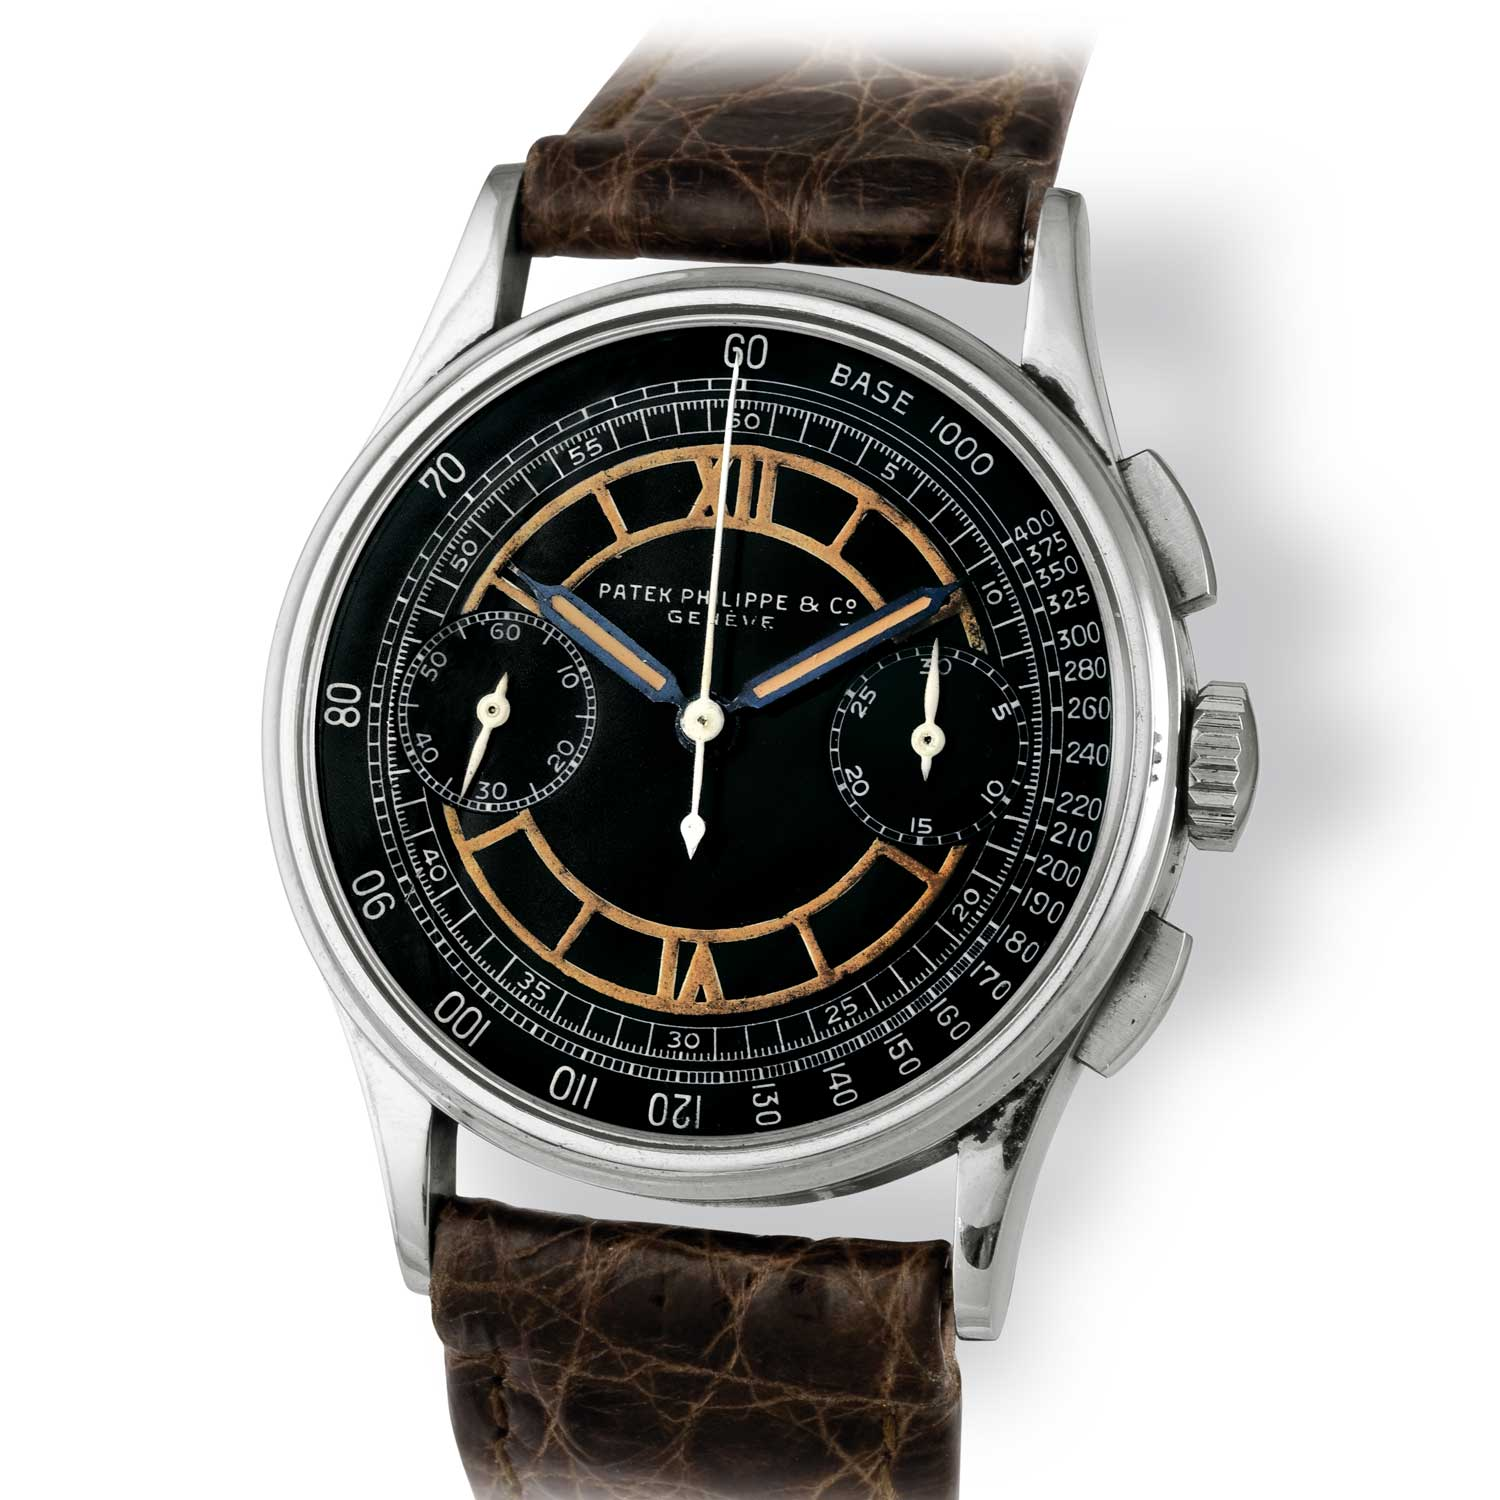 Patek Philippe ref. 130 steel chronograph with black dial and luminous chapter ring; tachymeter scale (Image: John Goldberger)